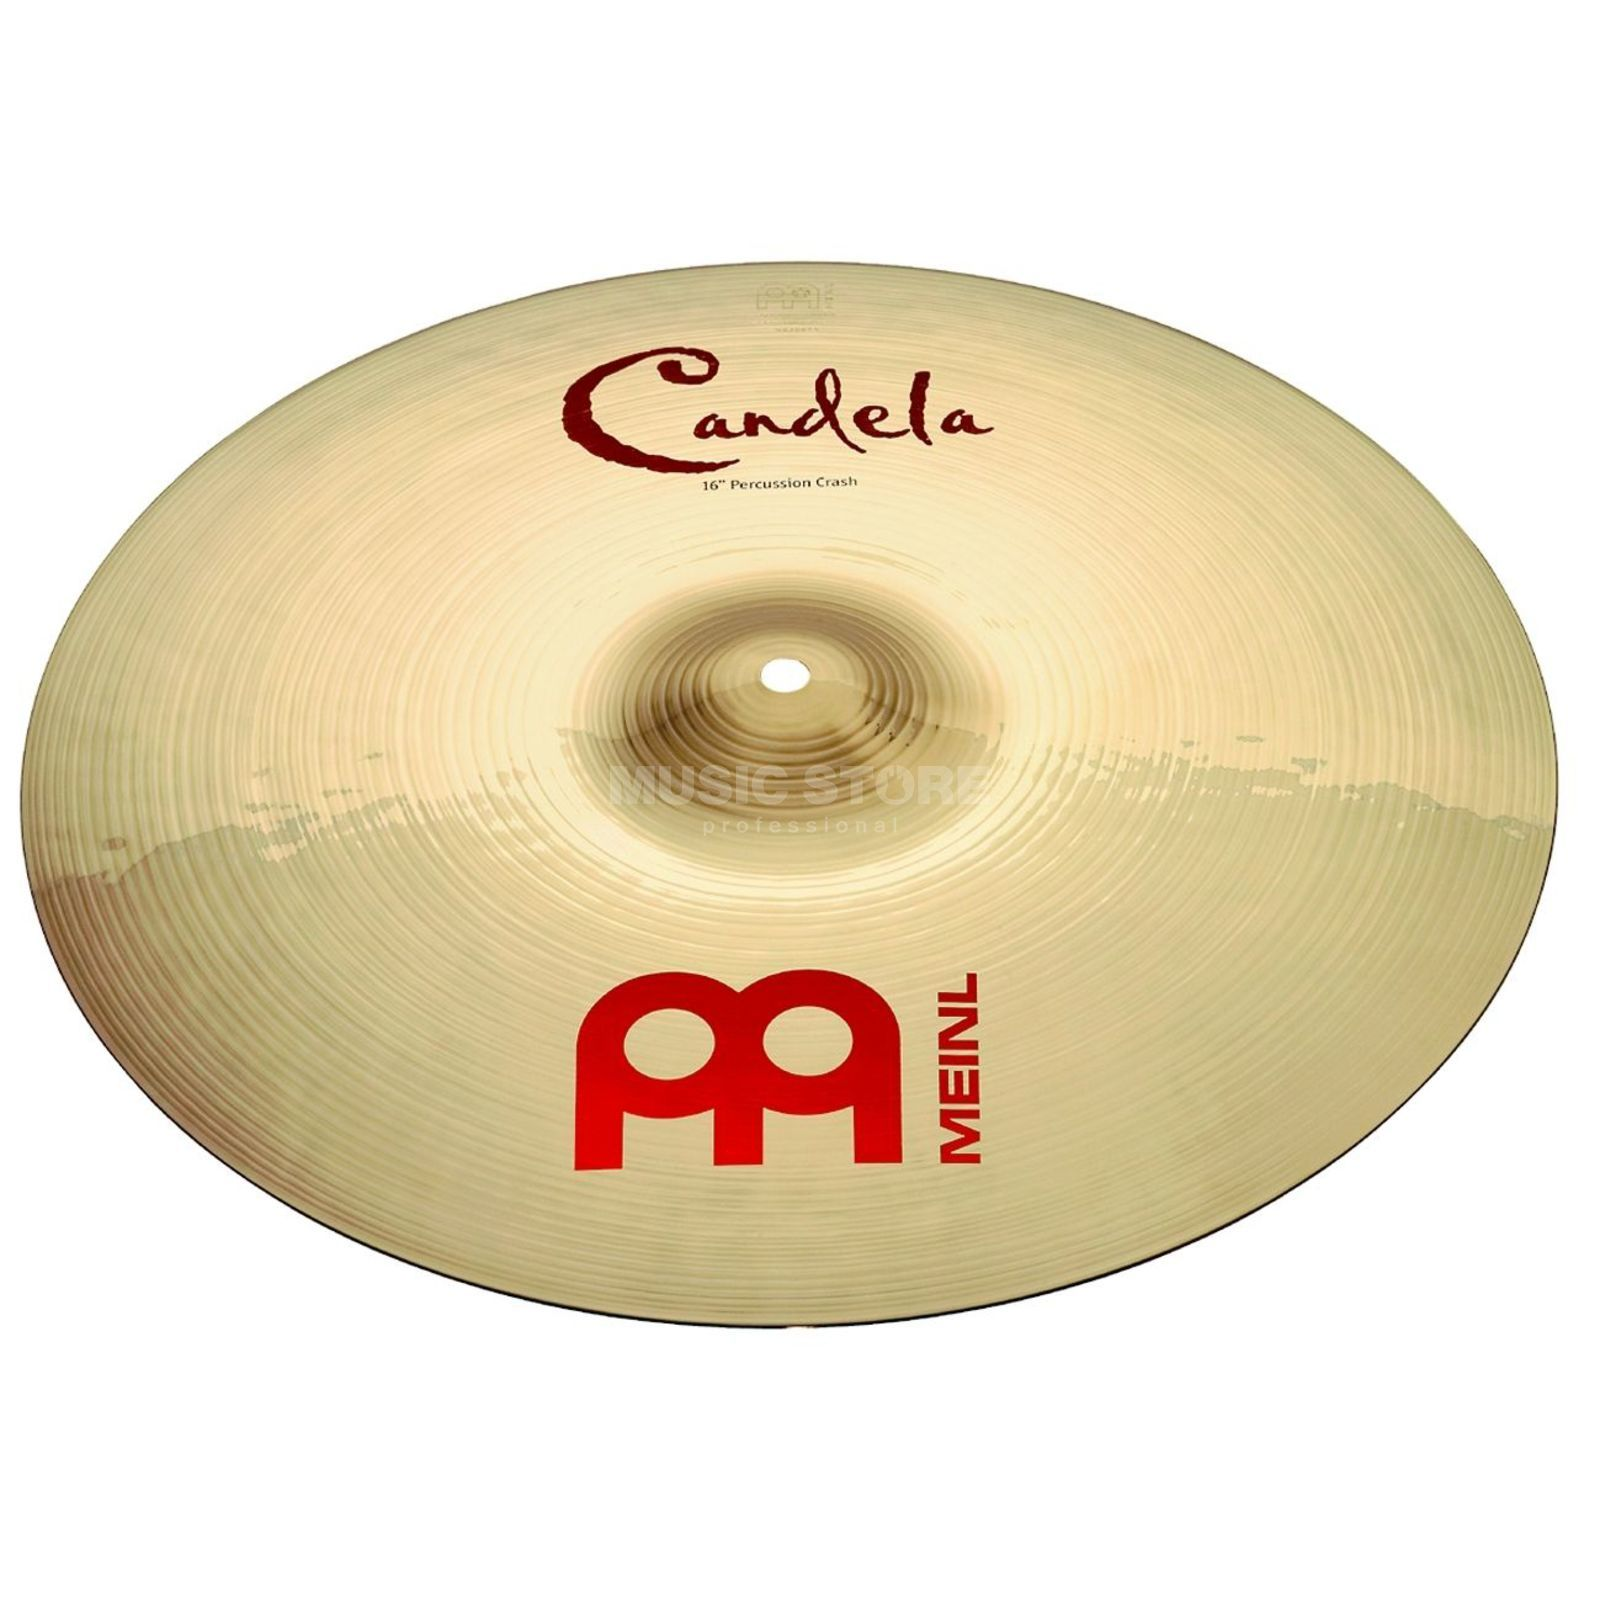 "Meinl Candela Crash 14"", CA14C, Percussion Cymbal, Overstock Product Image"